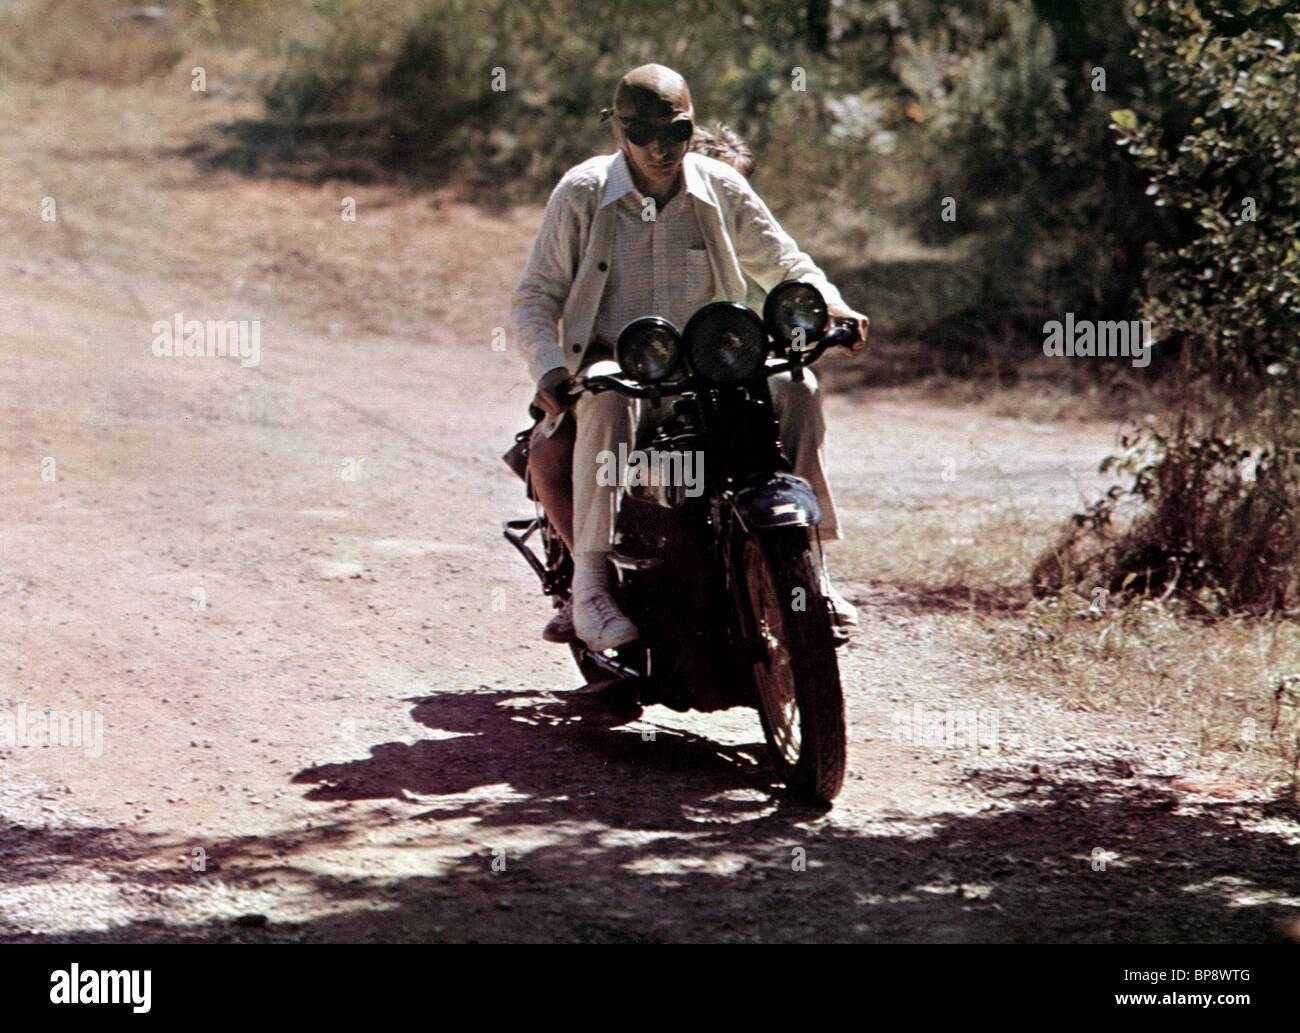 MOTORCYCLE AGE OF INNOCENCE (1977) - Stock Image